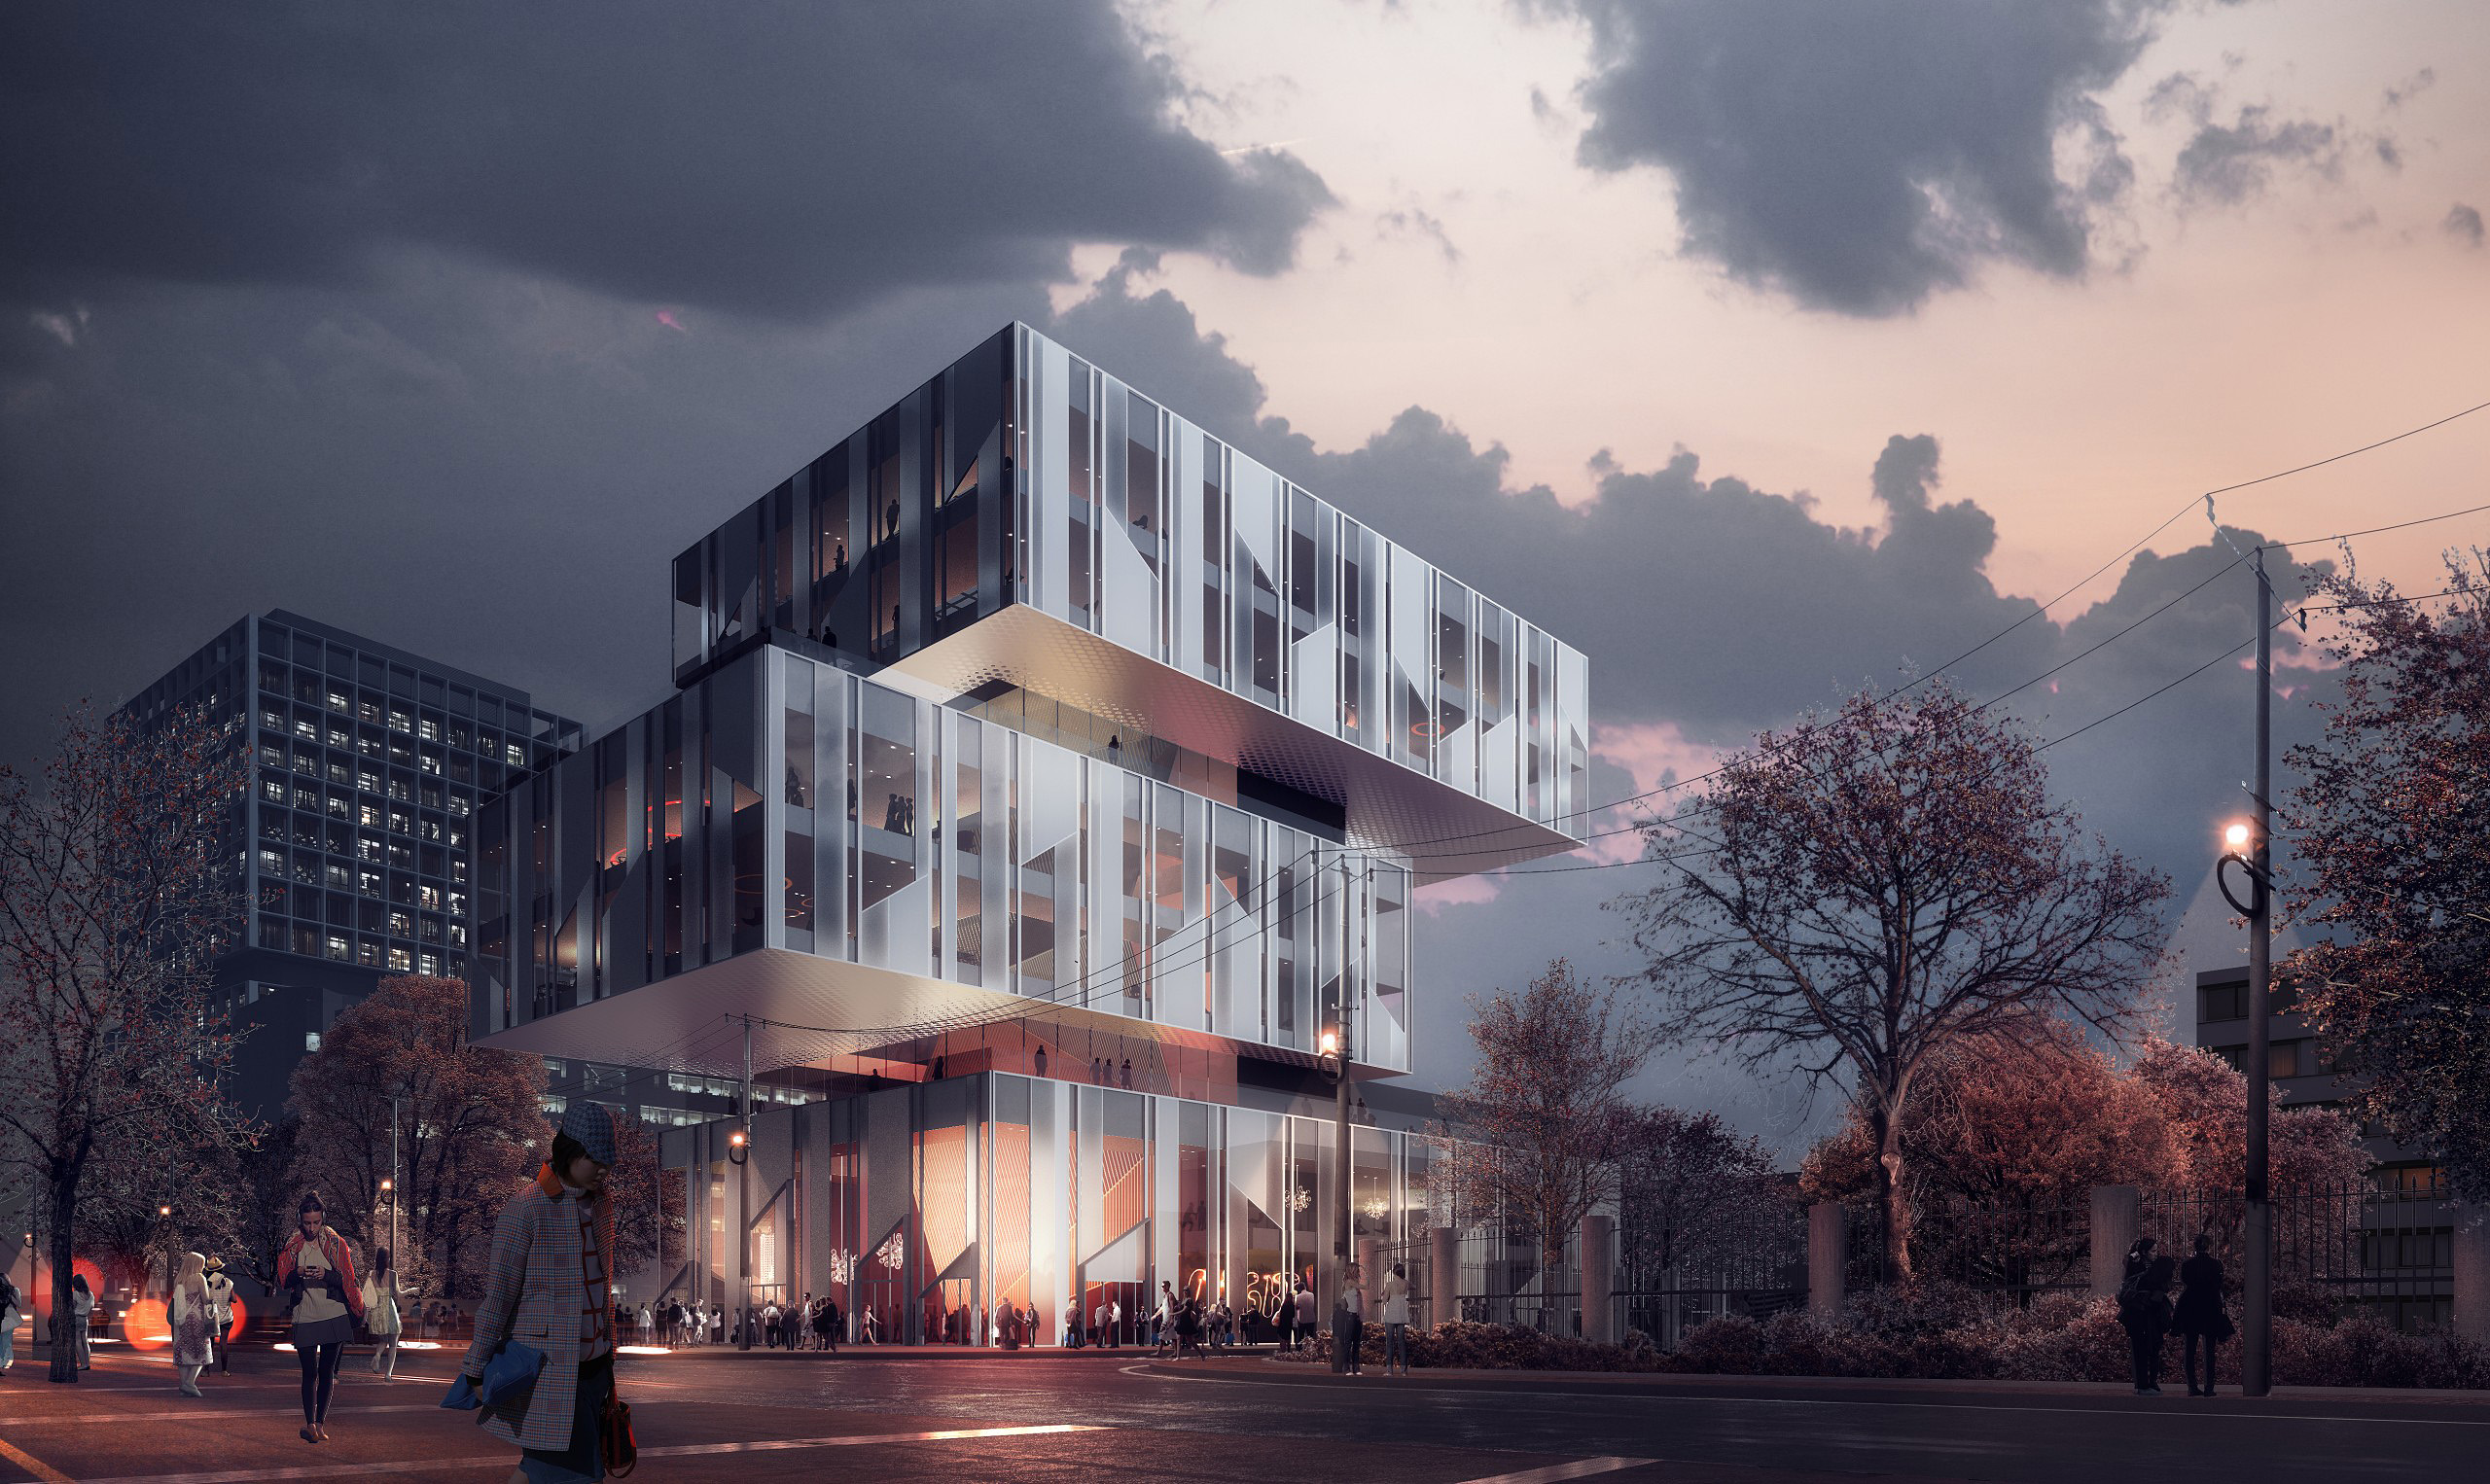 Winning competition rendering: frosted glass building with colorful interior, dramatic sky